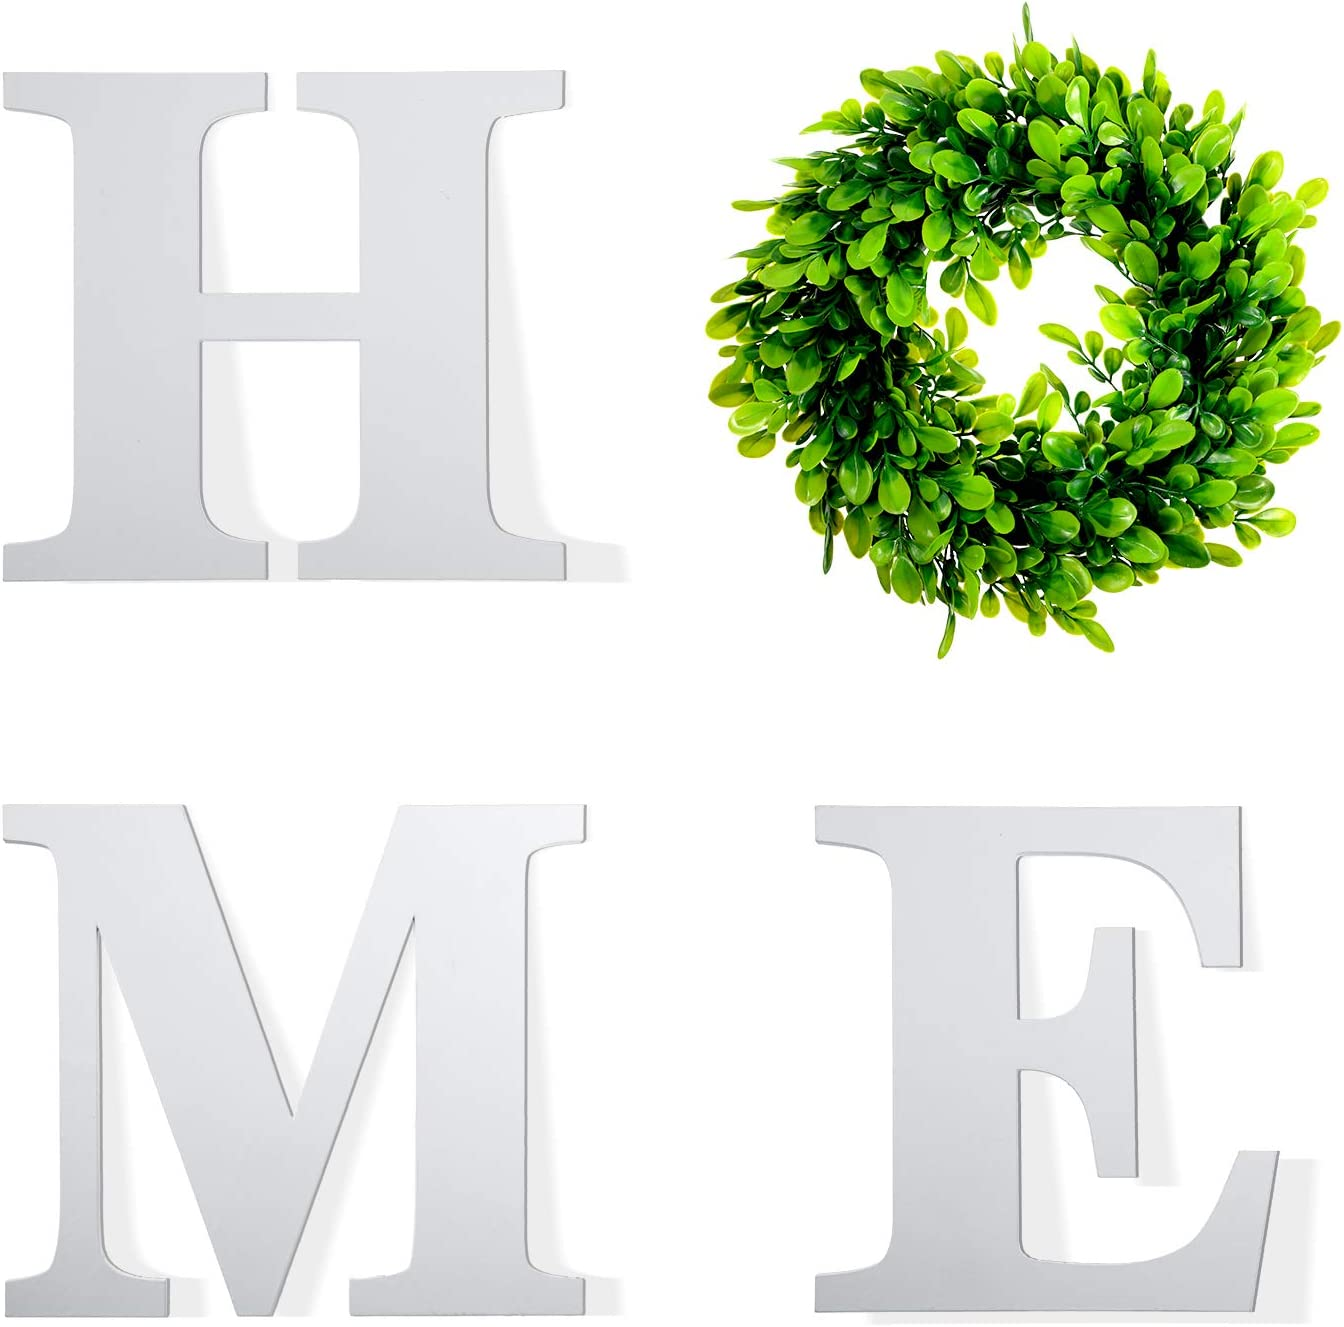 Nuanchu Wooden Letters Home Sign Artificial Wooden Letters H M E with Round Boxwood Wreath White Unfinished Wood Letter Plastic Green Leaves Wreath for Rustic Home Wall Door Decoration